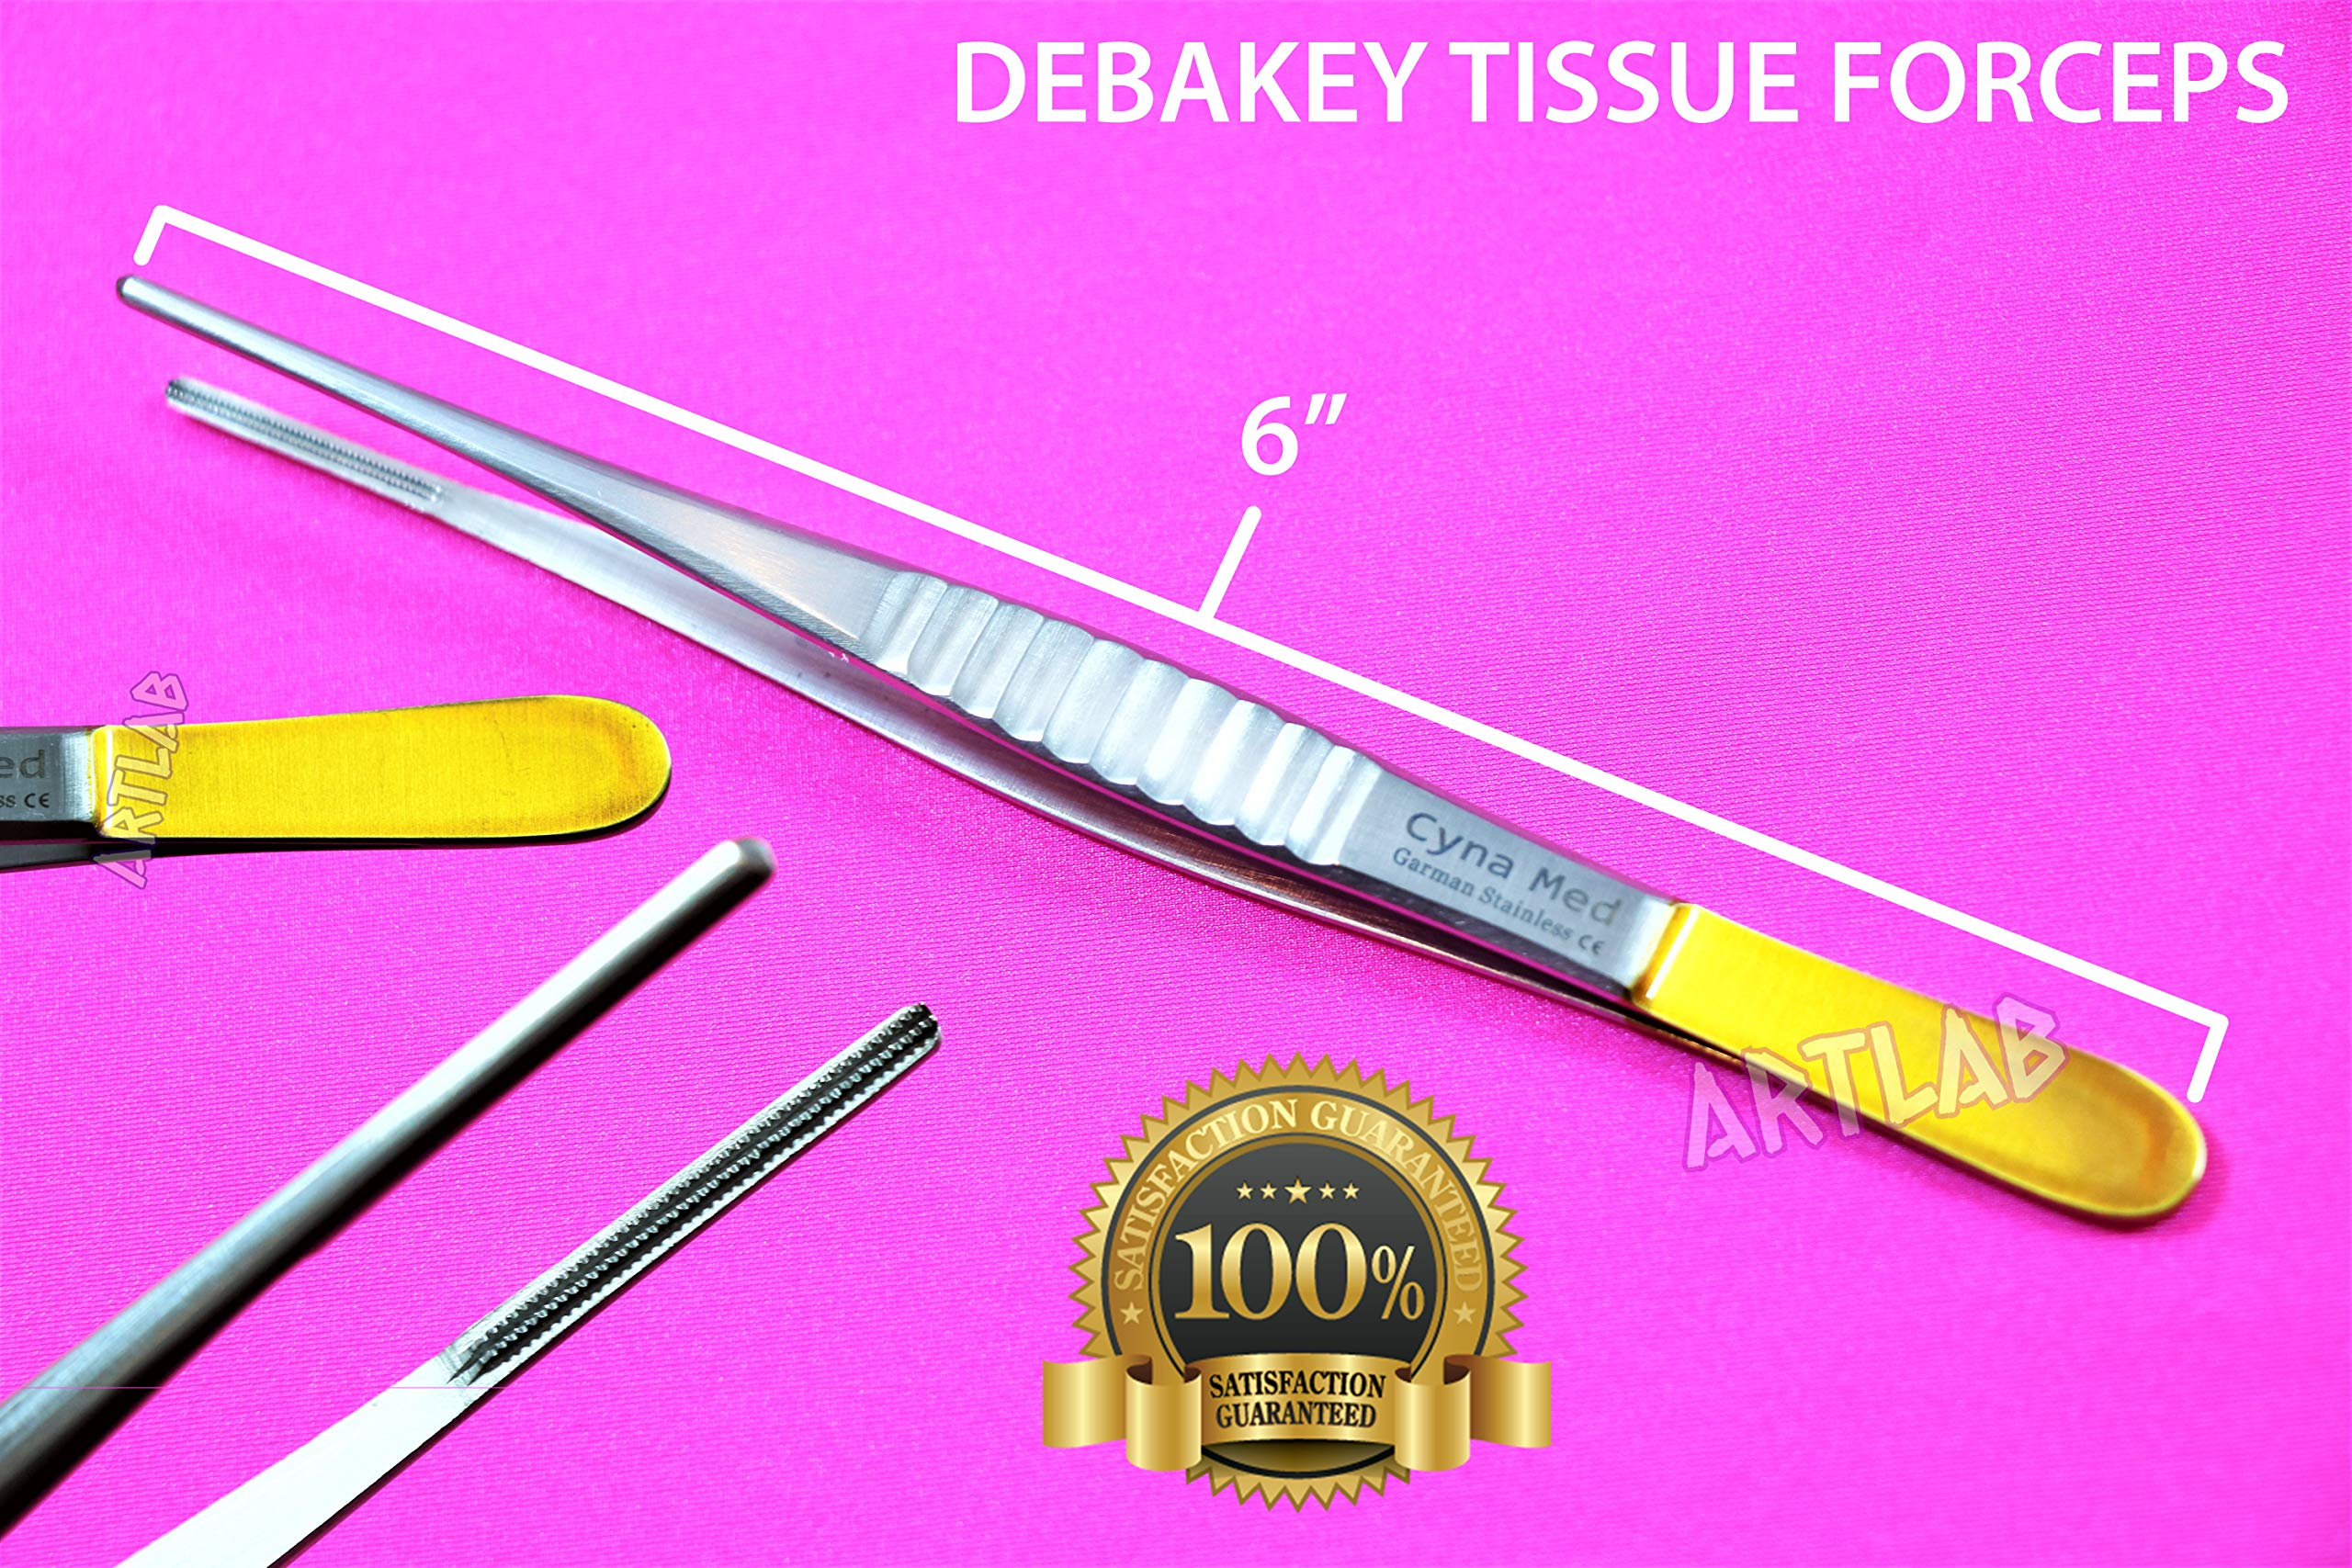 1 New! German DEBAKEY Forceps Vascular Tissue Forceps with Gold Handle Tips 6'' HIGH Grade (CYNAMED) by CYNAMED